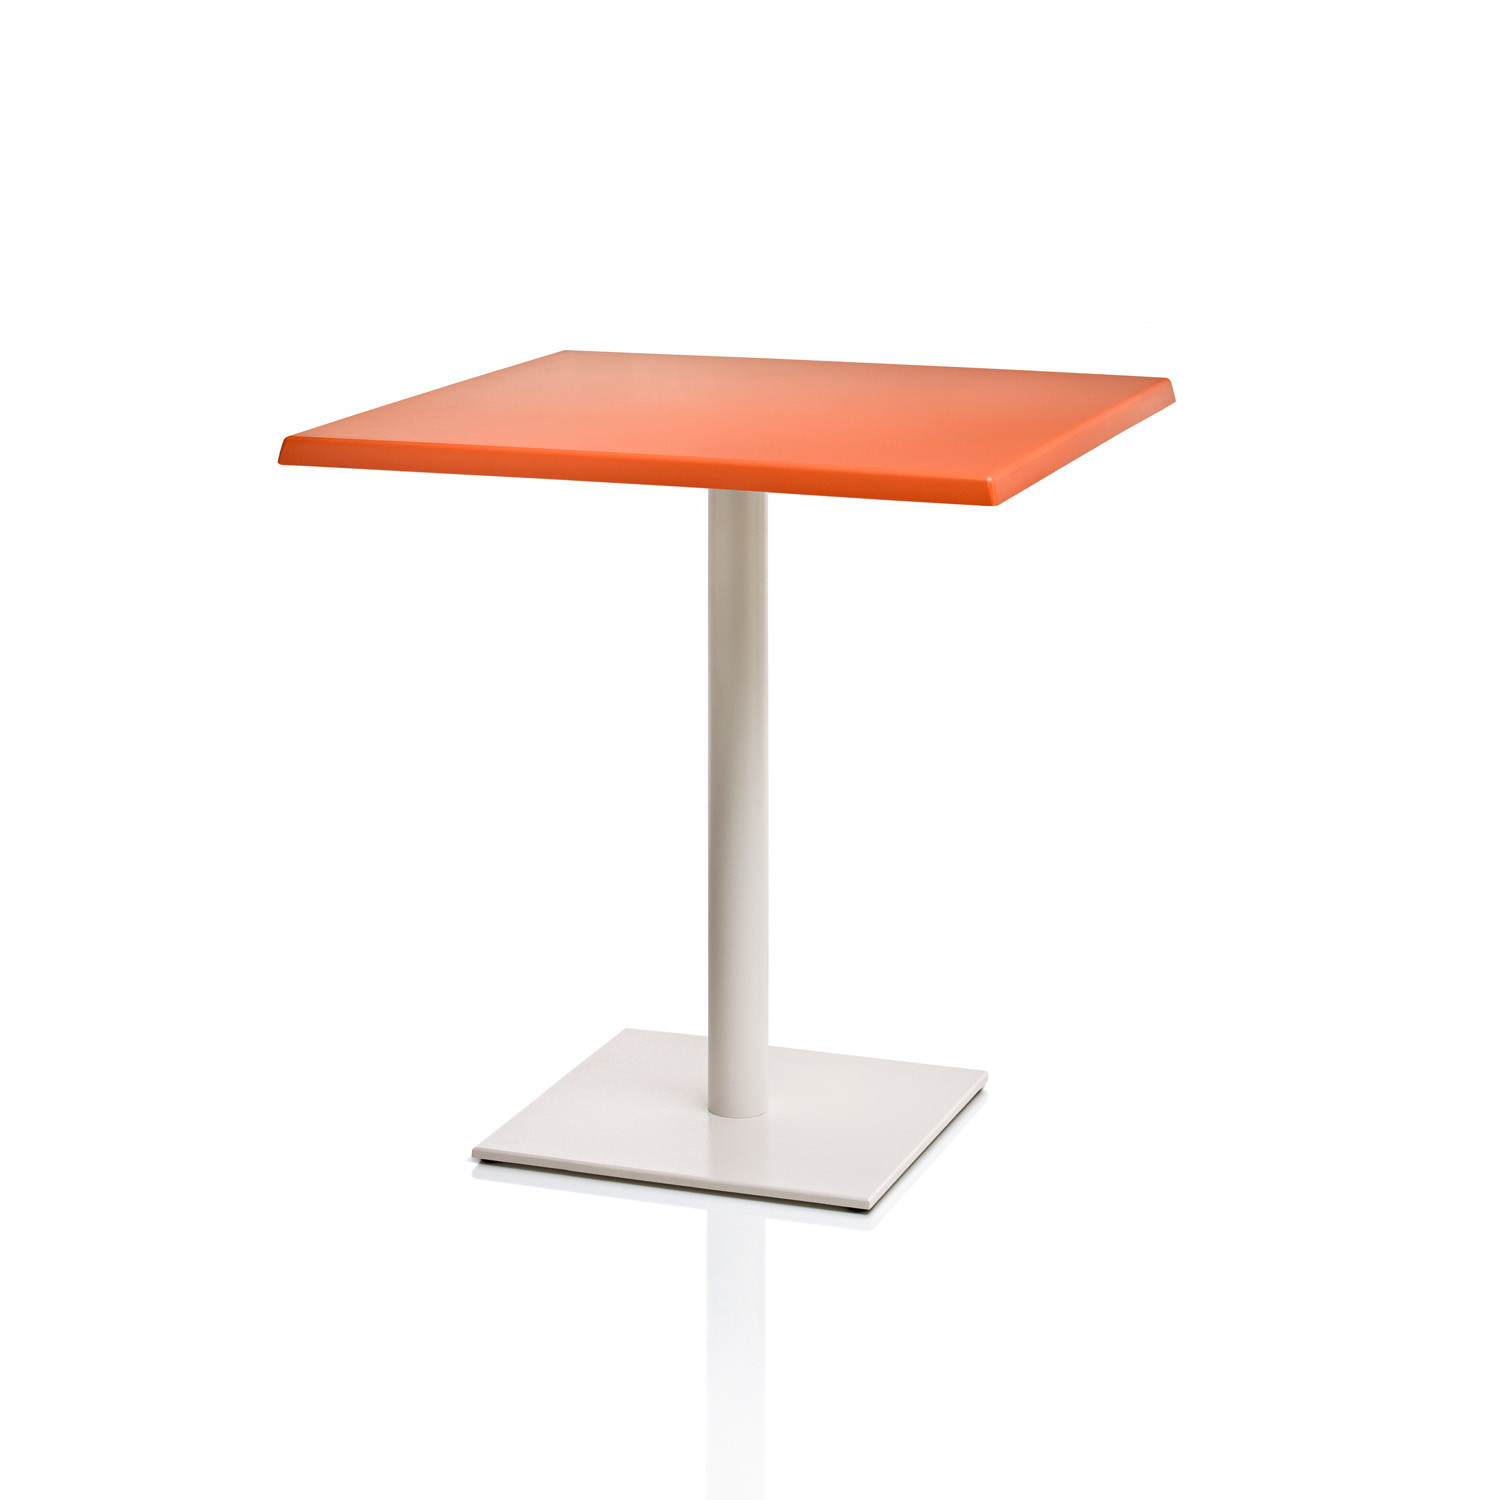 Alghi Table from Apres Furniture